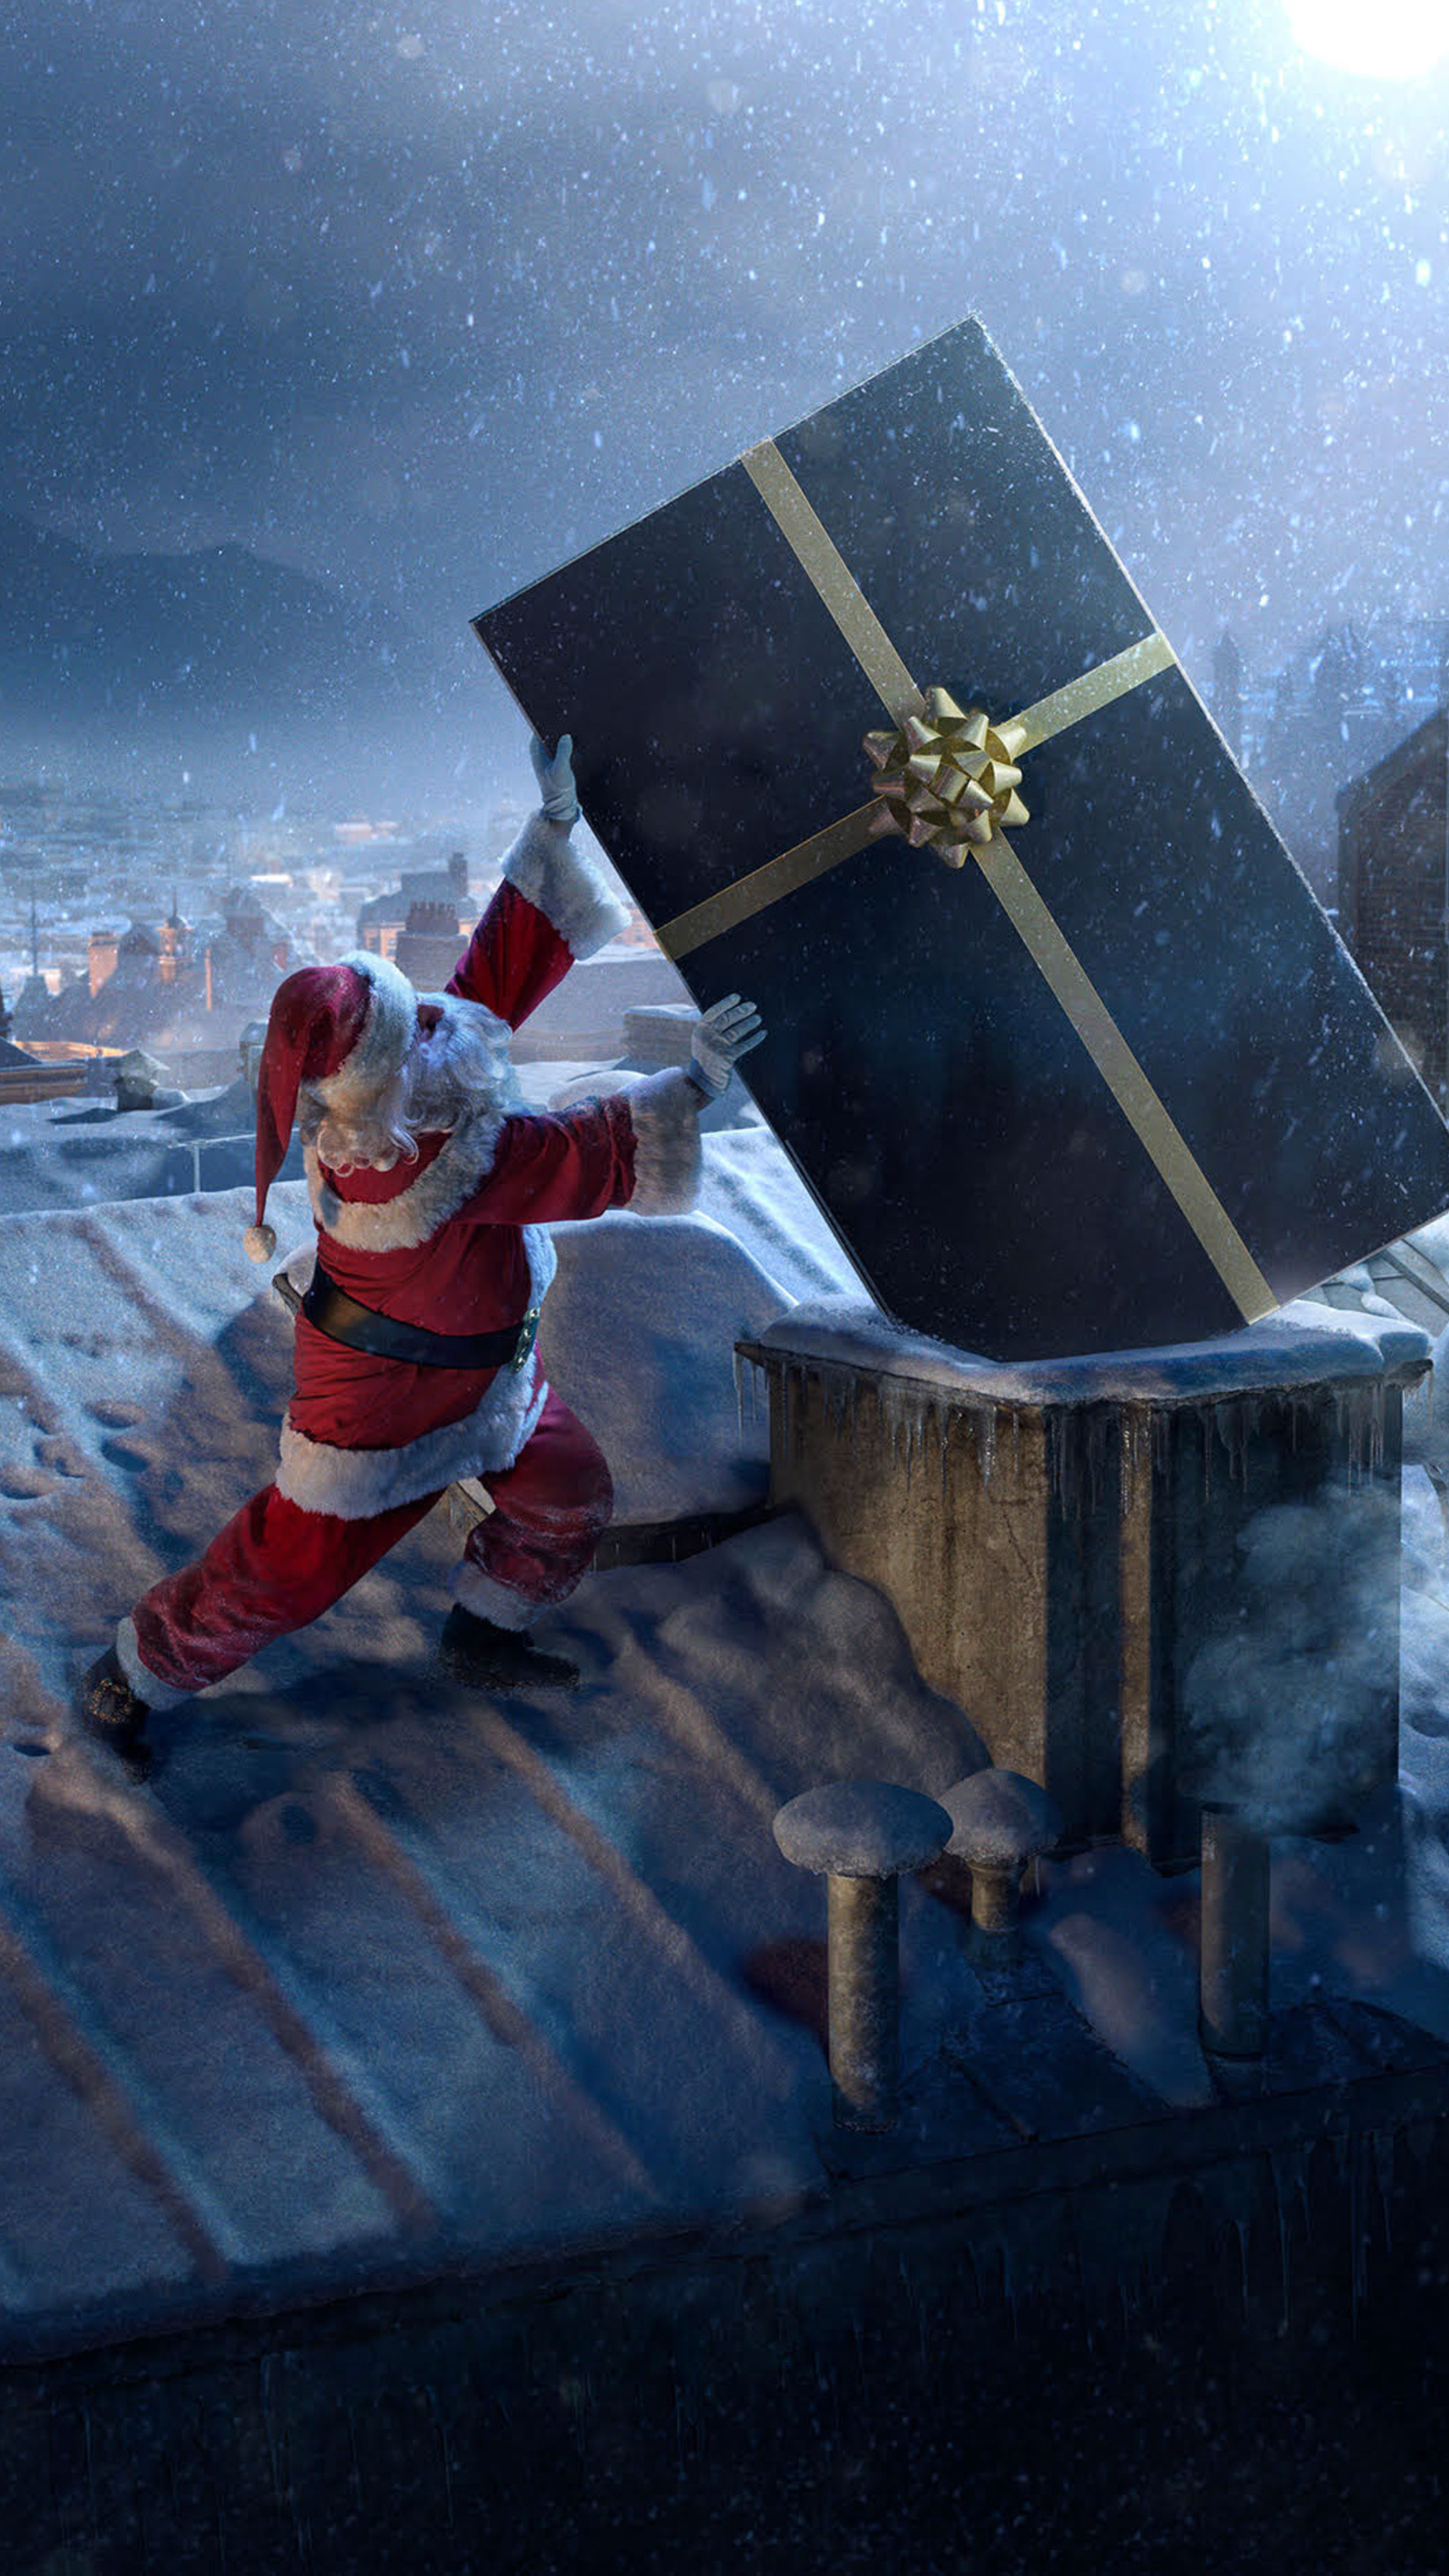 santa-claus-chimne-present-delivery-b9.jpg